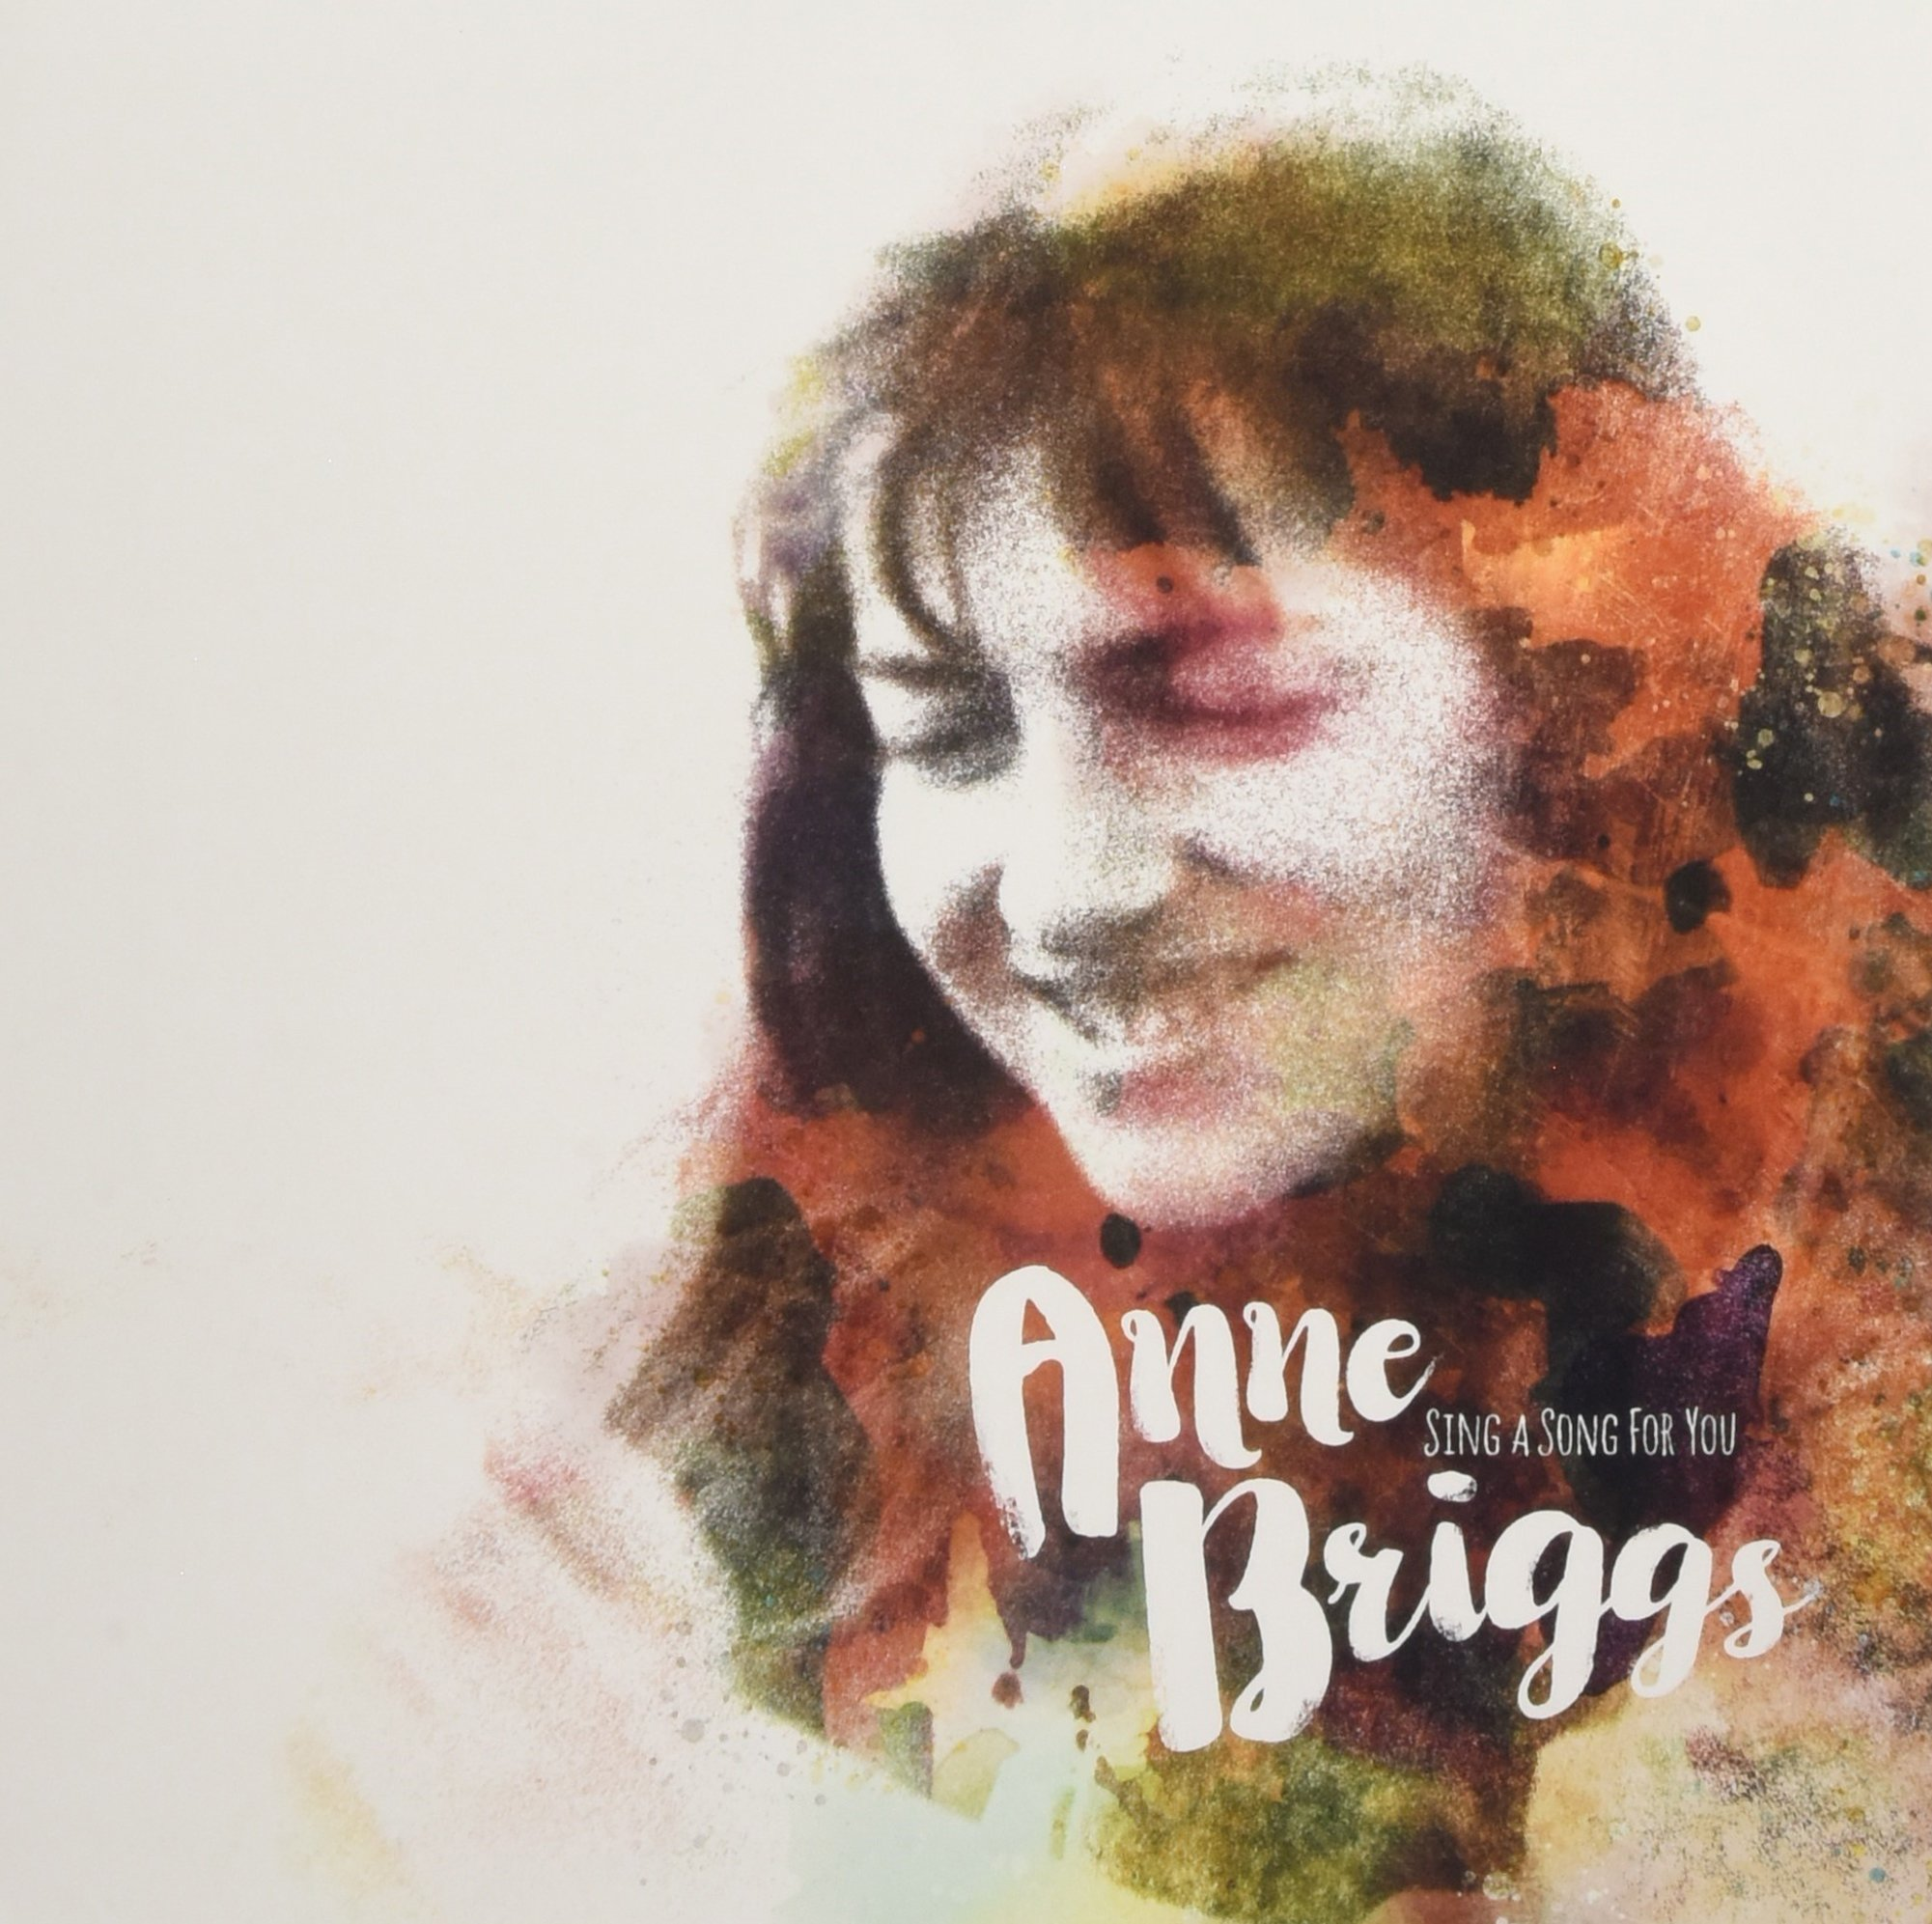 Vinilo : Anne Briggs - Sing A Song For You (LP Vinyl)